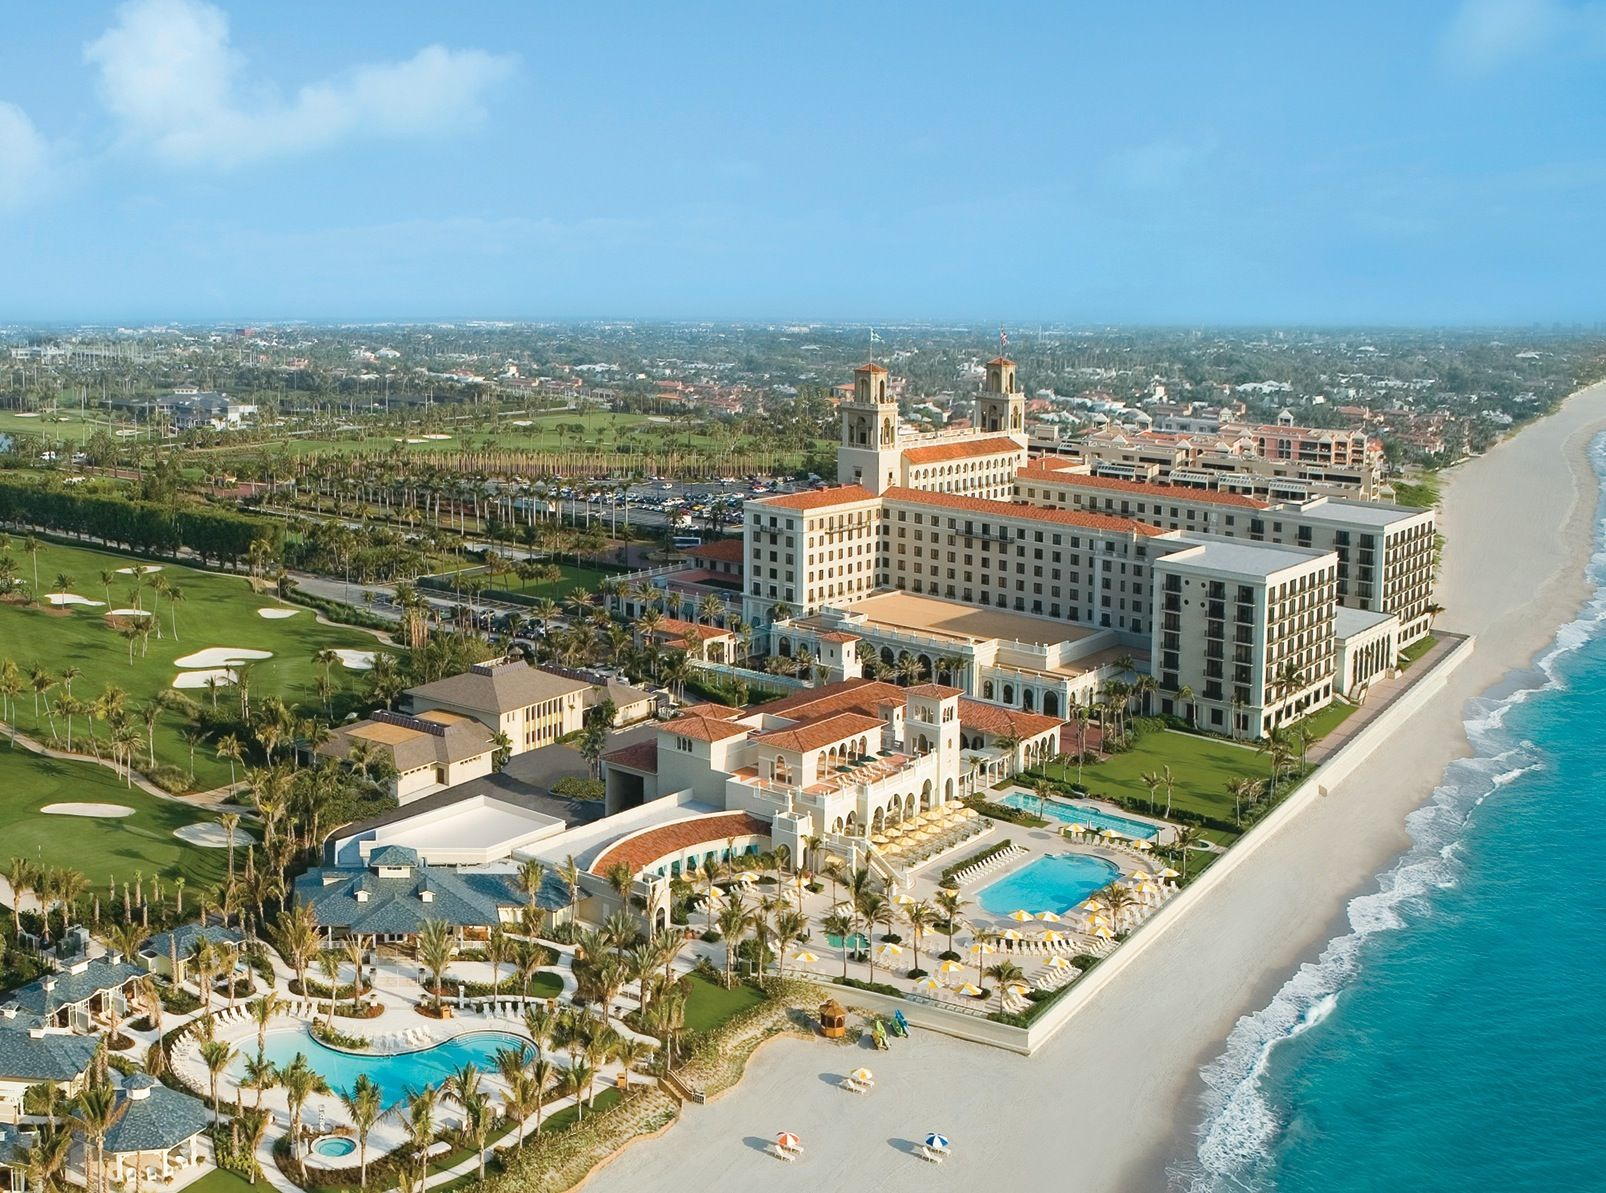 The Breakers Palm Beach A Favorite Place To Stay With Plenty Of Great Kid Activities And Getaway Options For S Too